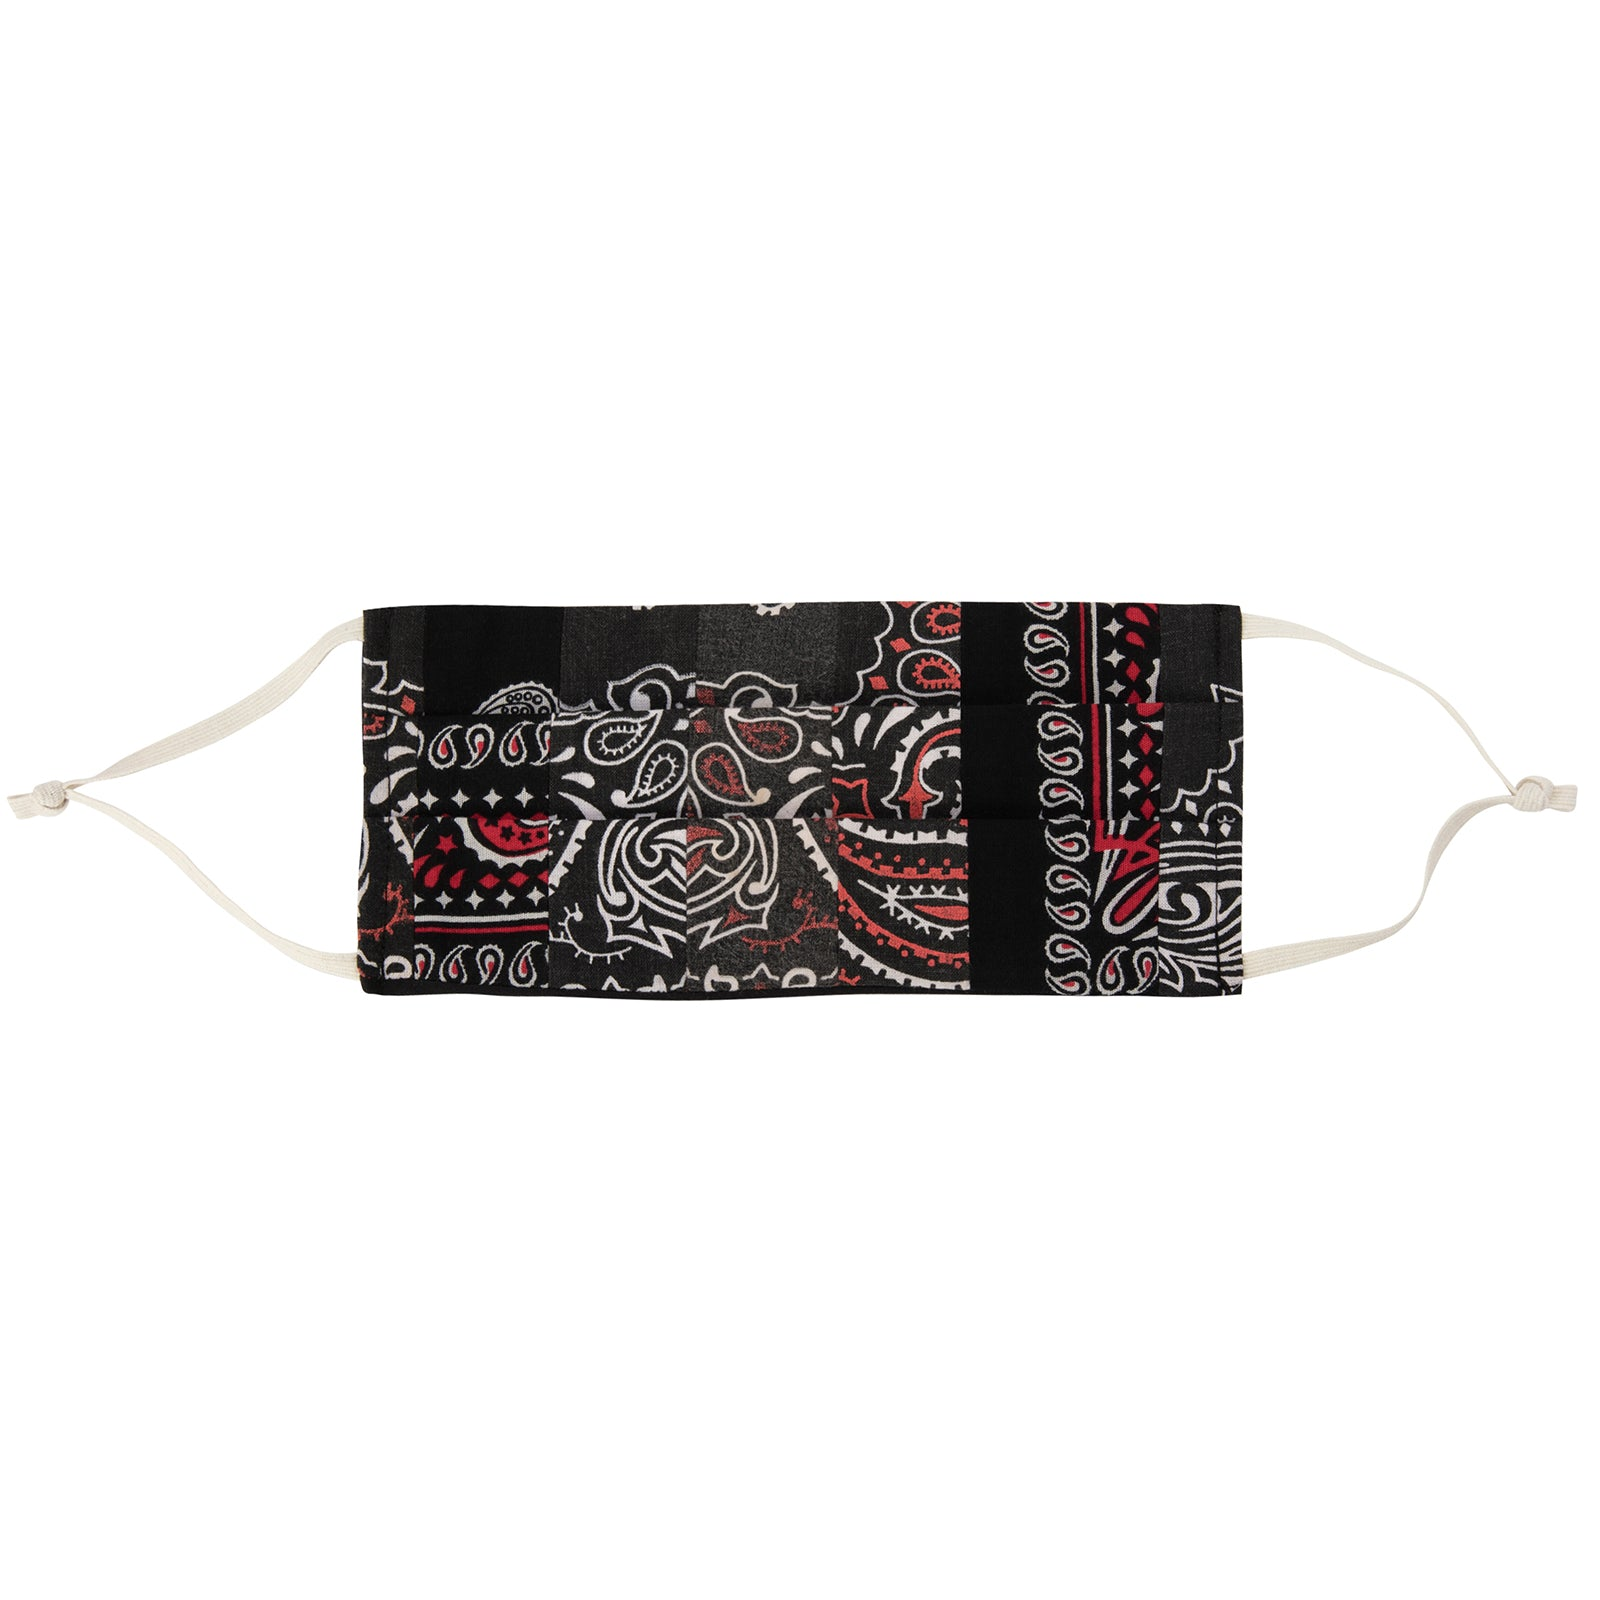 Fraction LA Bandana Face Mask - Black - Accessories - Broken English Jewelry